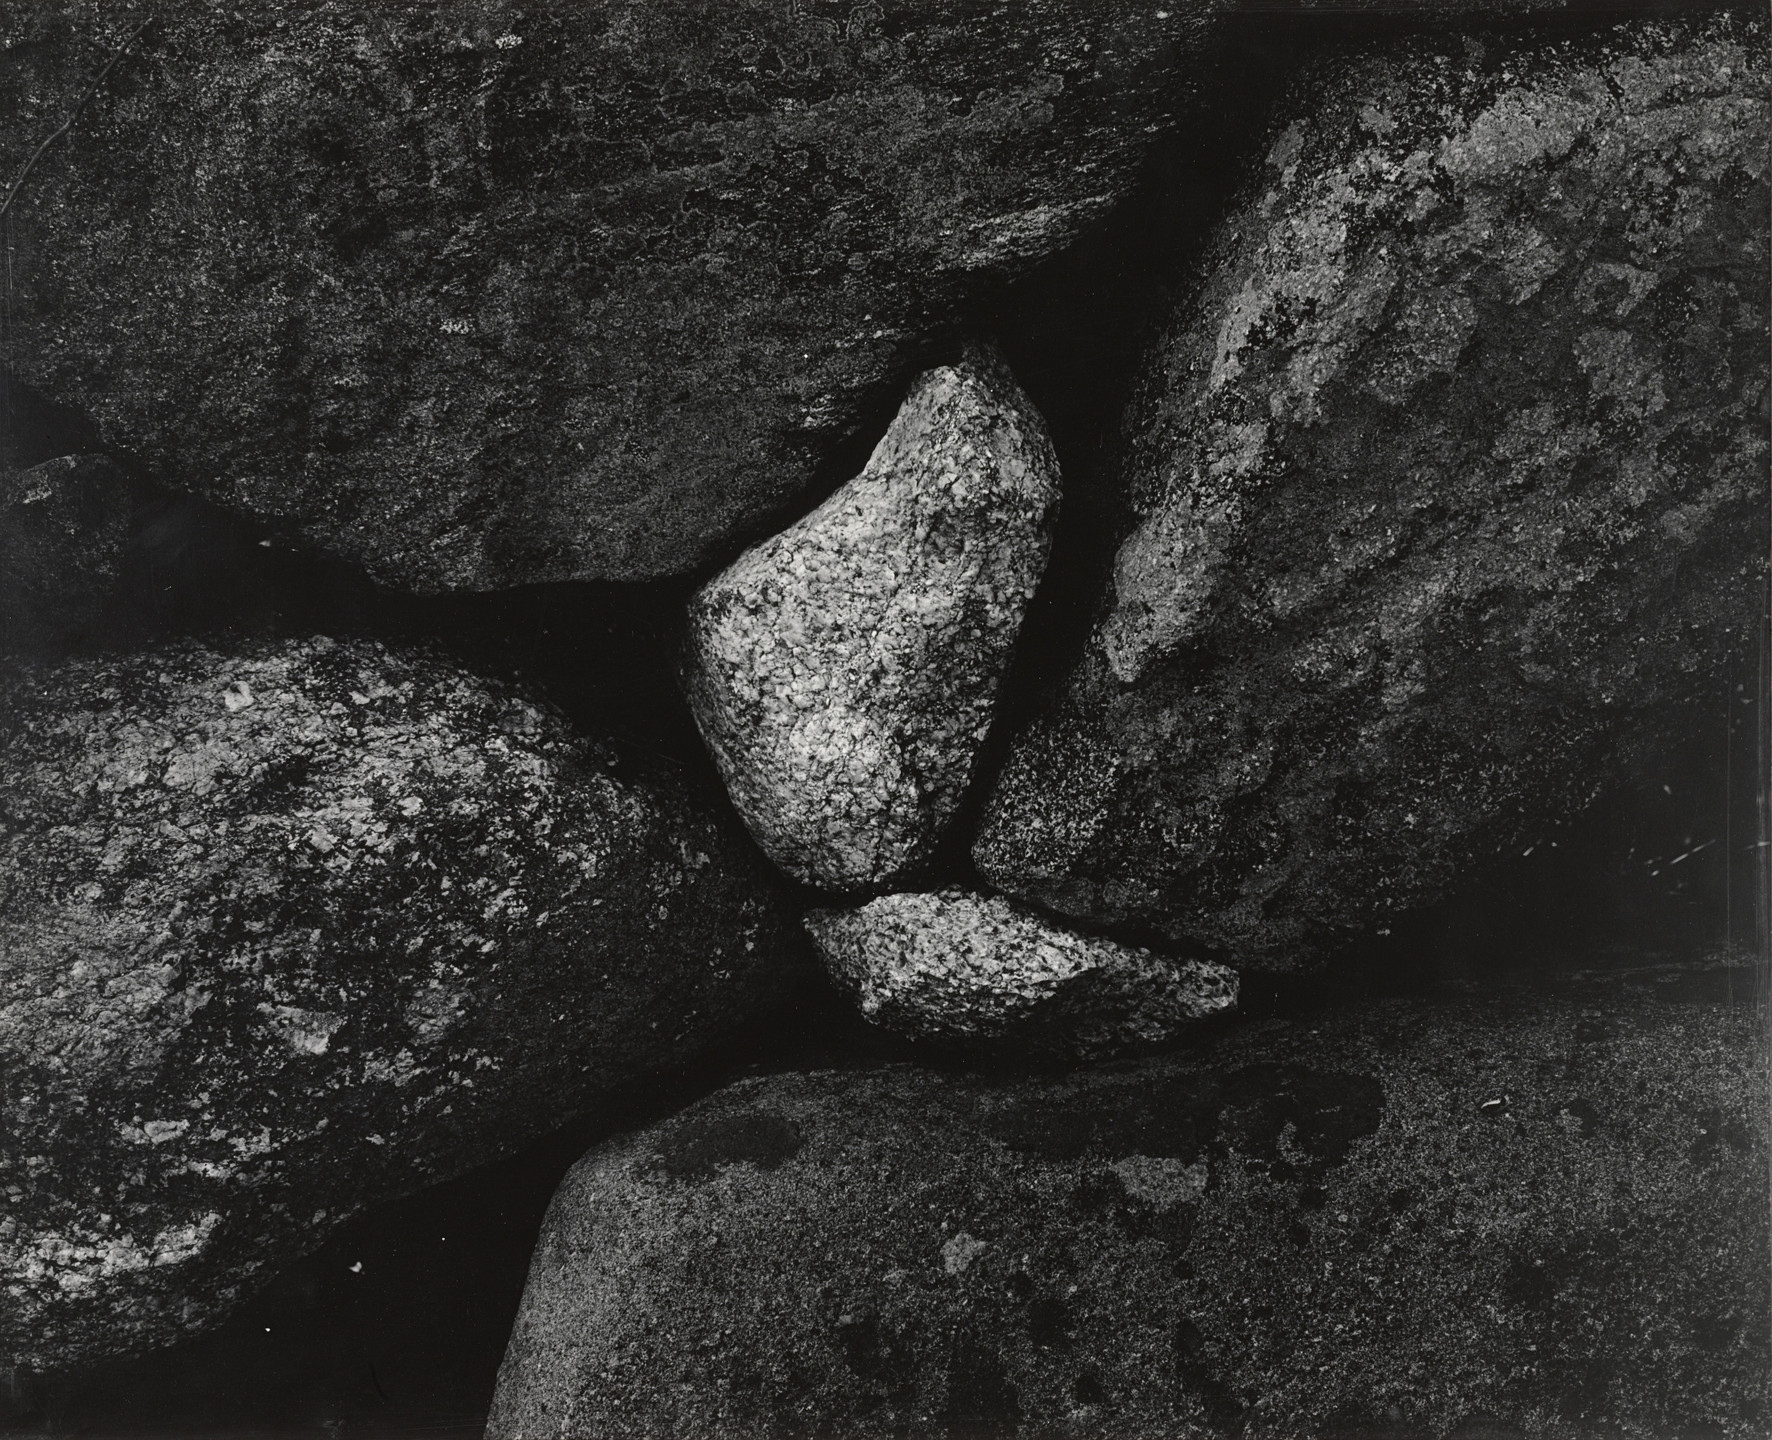 Aaron Siskind. Martha's Vineyard. c. 1954